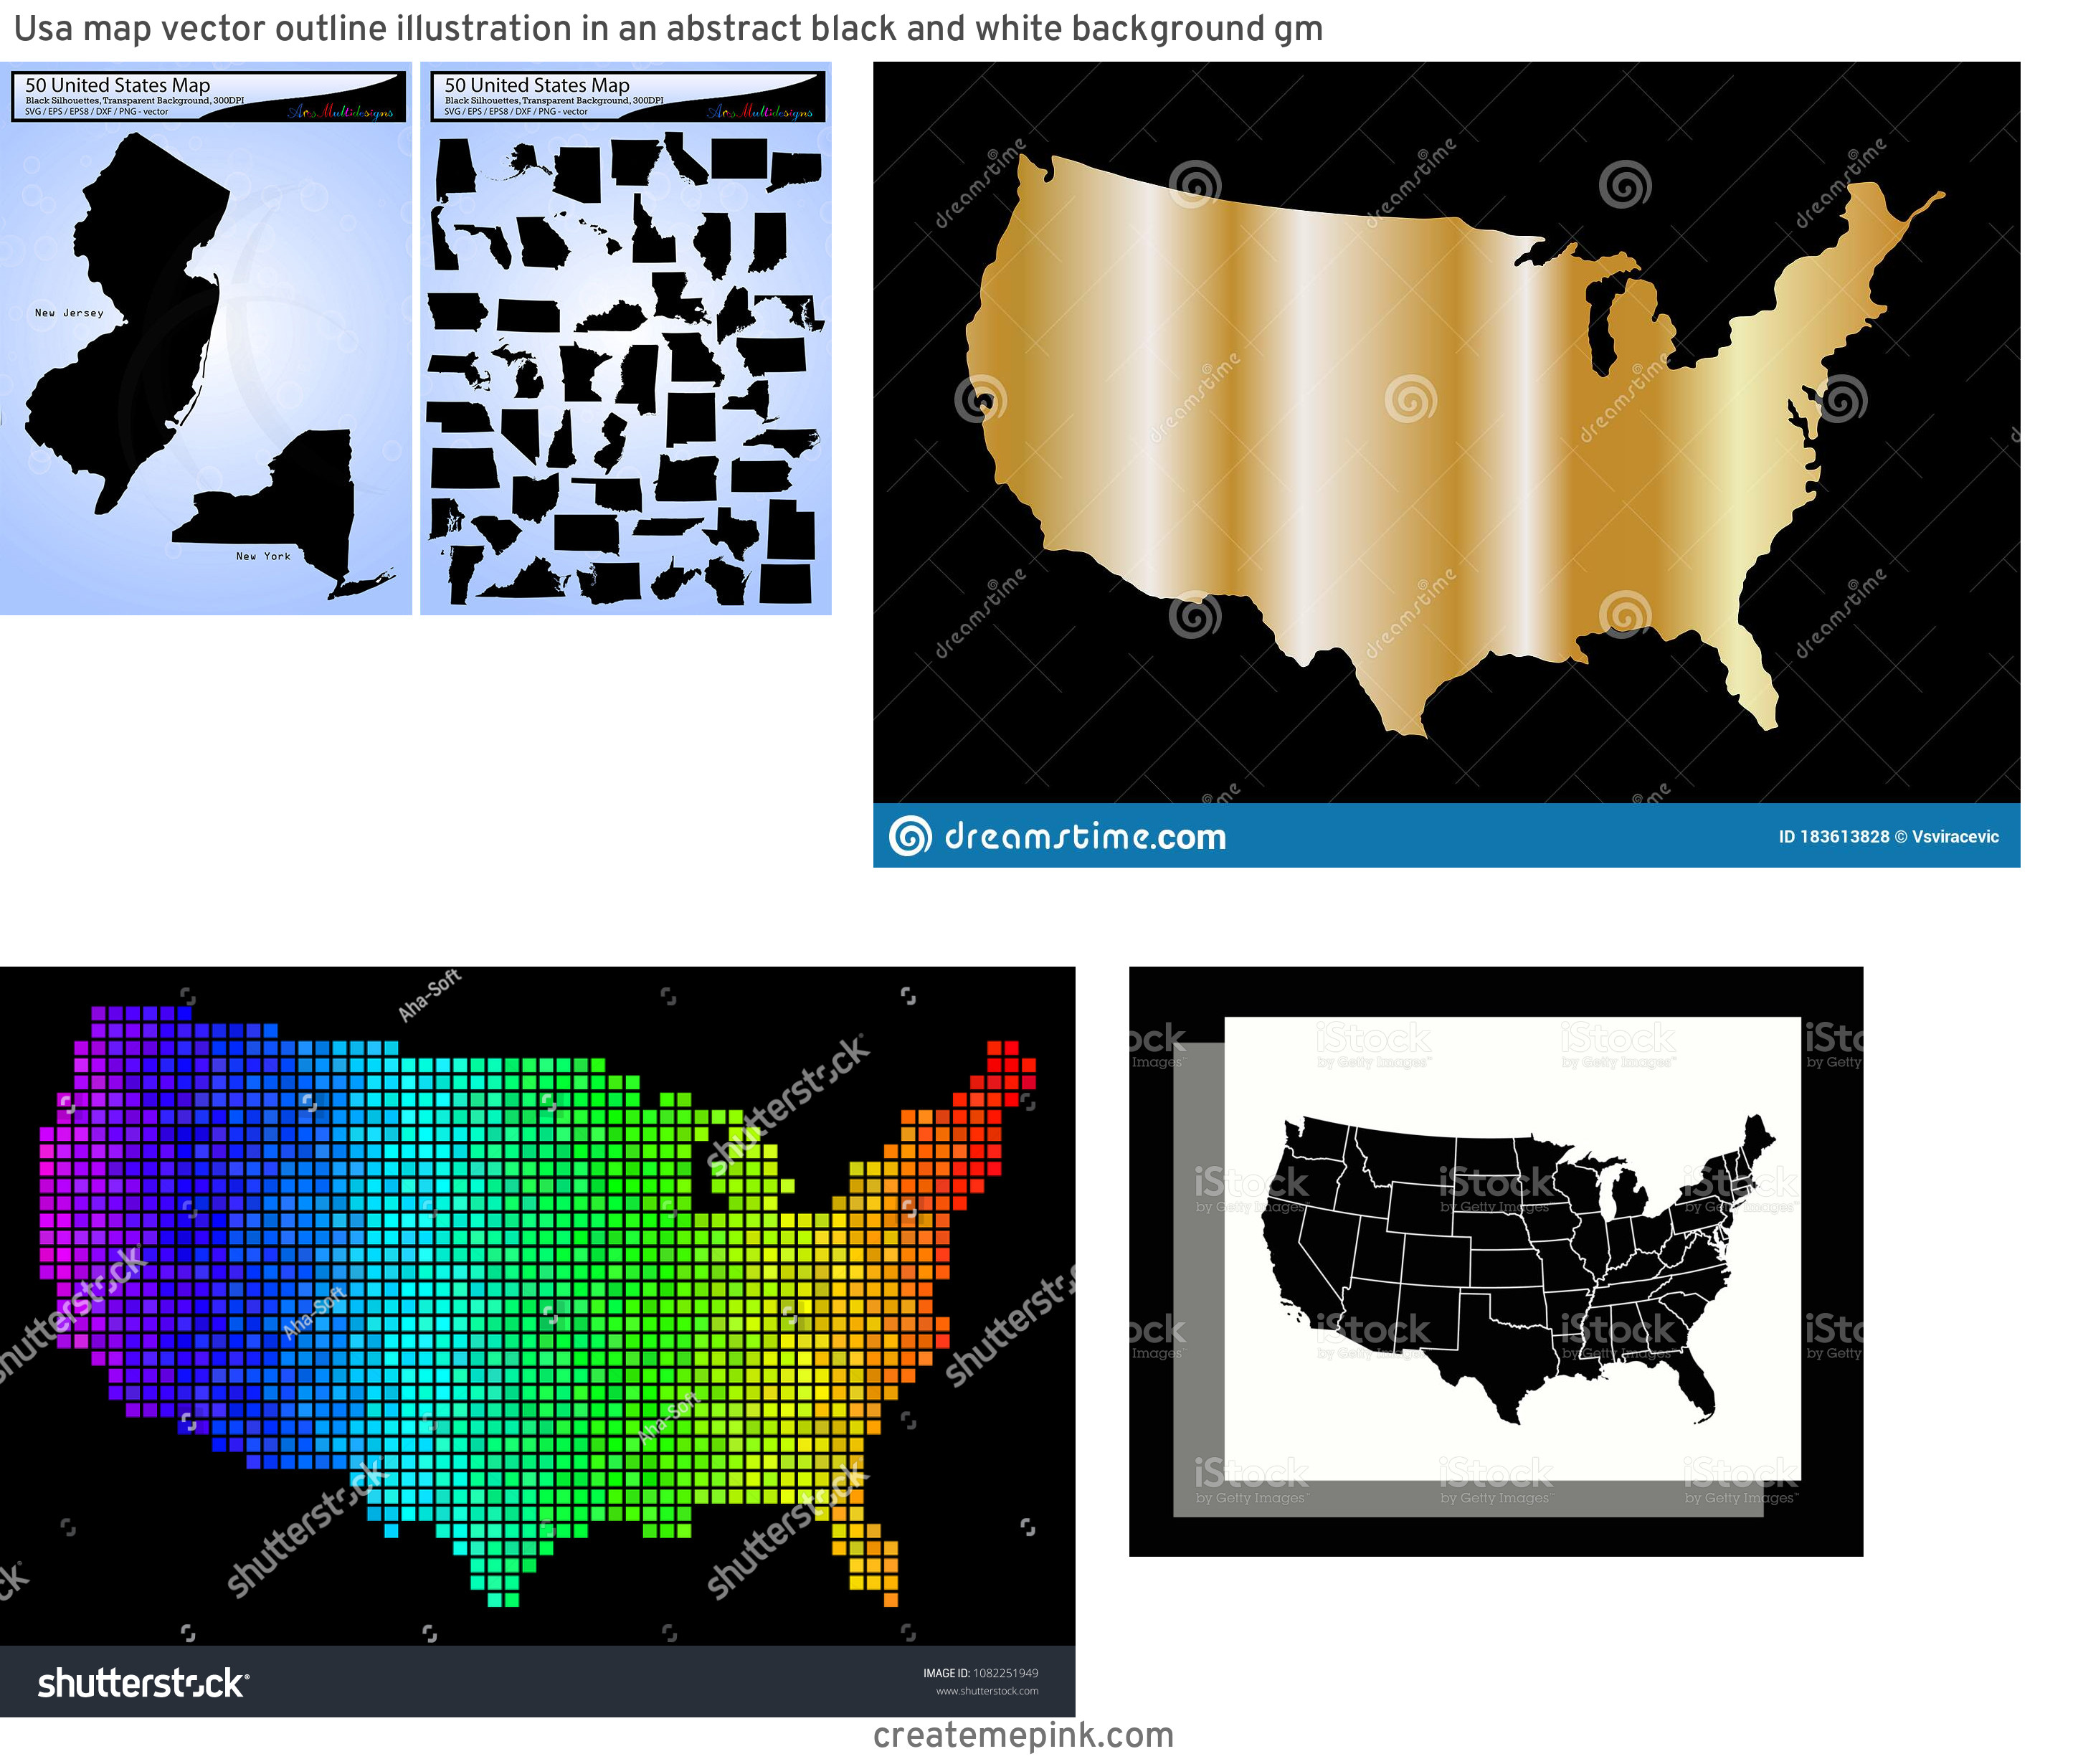 USA Map Vector Black: Usa Map Vector Outline Illustration In An Abstract Black And White Background Gm